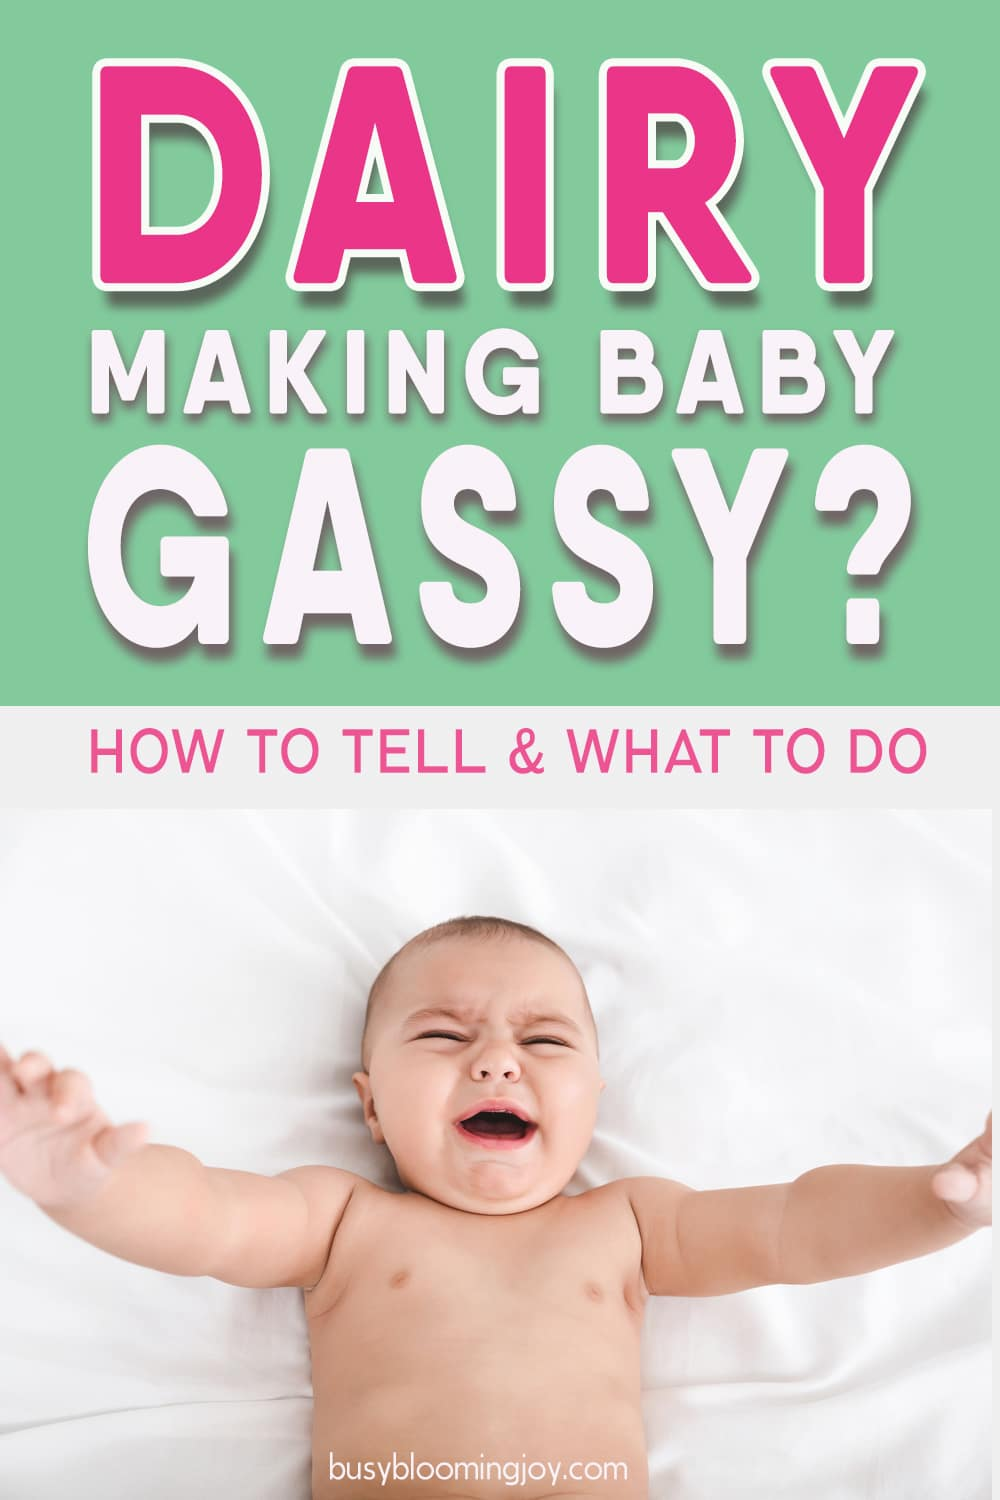 Is your baby gassy or have colic? Breastfeeding – the cause could be dairy (cow's milk allergy or lactose intolerance) or another food making your baby gassy & cry a lot (colic). Dairy/cow's milk can also contribute to acid reflux. Feeding baby cow's milk formula & baby fussy, has gas pains, colic or acid reflux? It could be cow's milk allergy or lactose intolerance. All about dairy intolerance/cow's milk protein allergy & other food allergies here. Signs, symptoms, remedies, treatments.